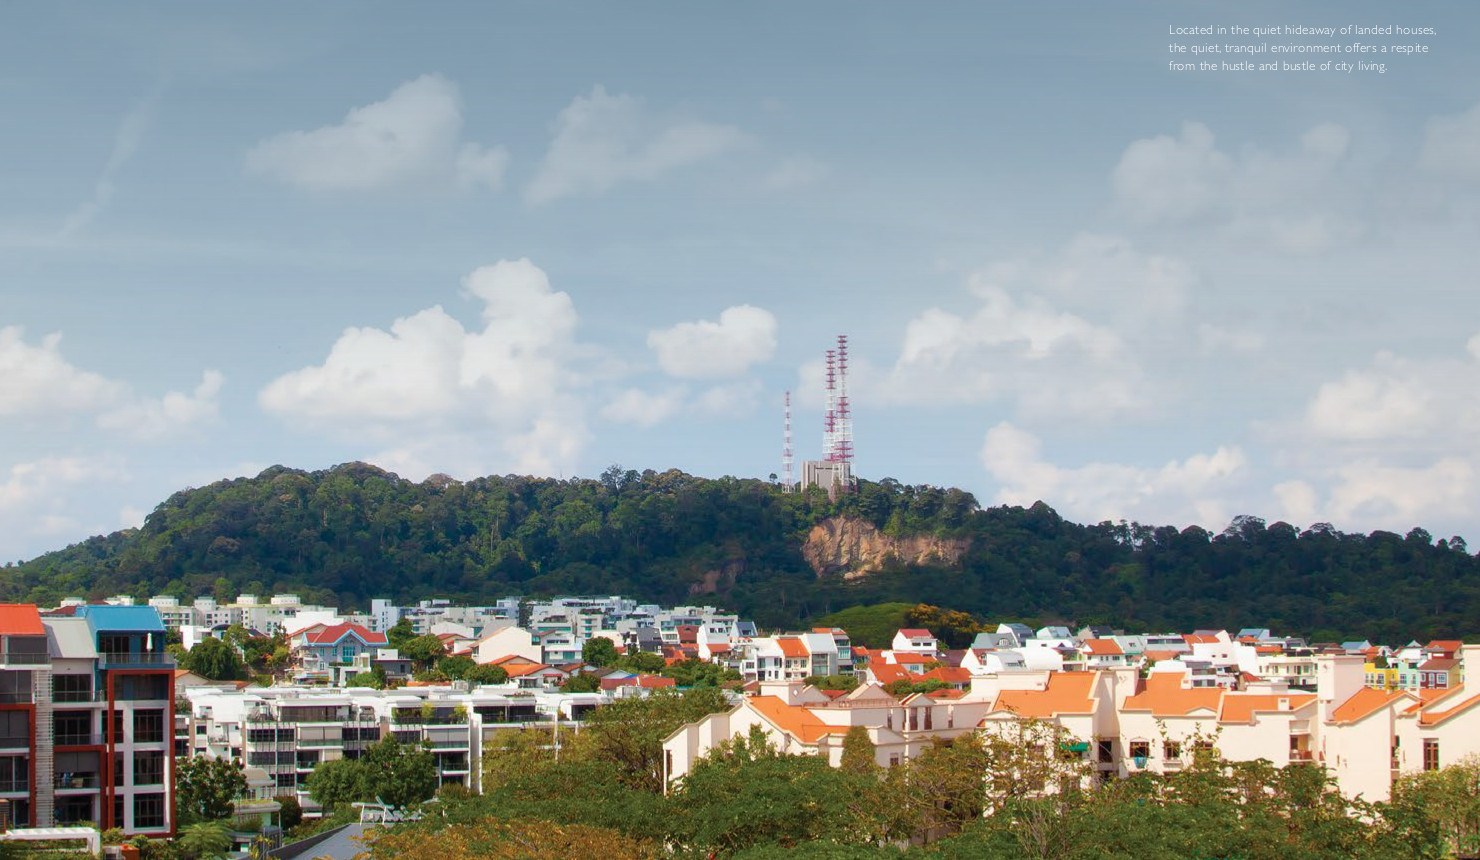 View @ Kismis Location . View @ Kismis Location . The Site is Set Against Backdrop of Bukit Timah Hill